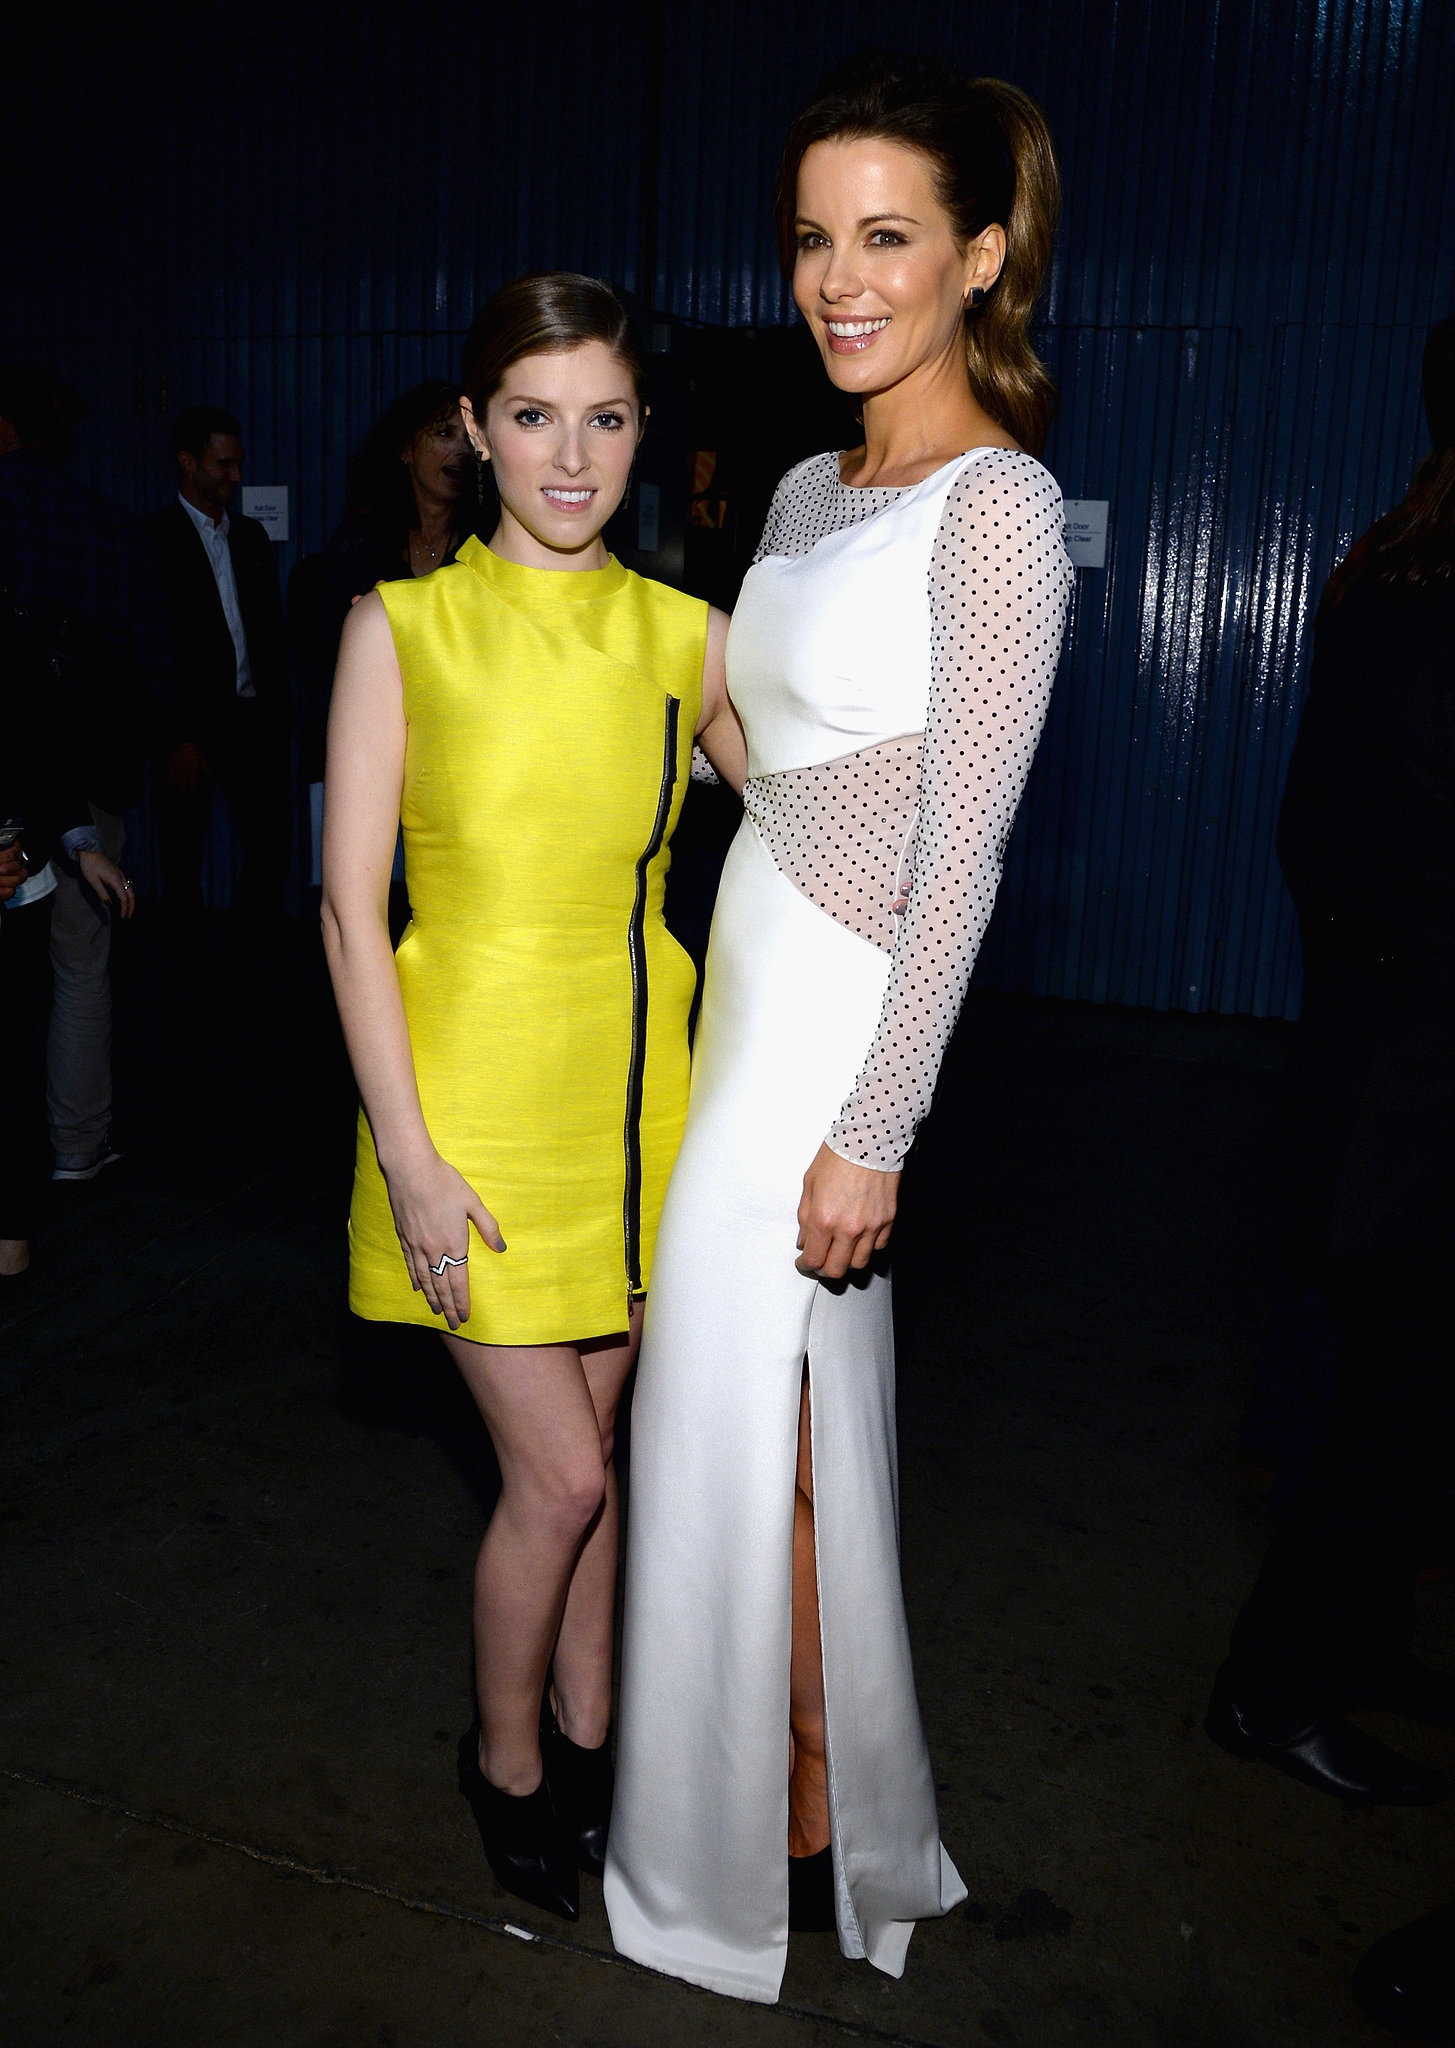 Anna Kendrick and Kate Beckinsale both looked glamorous.